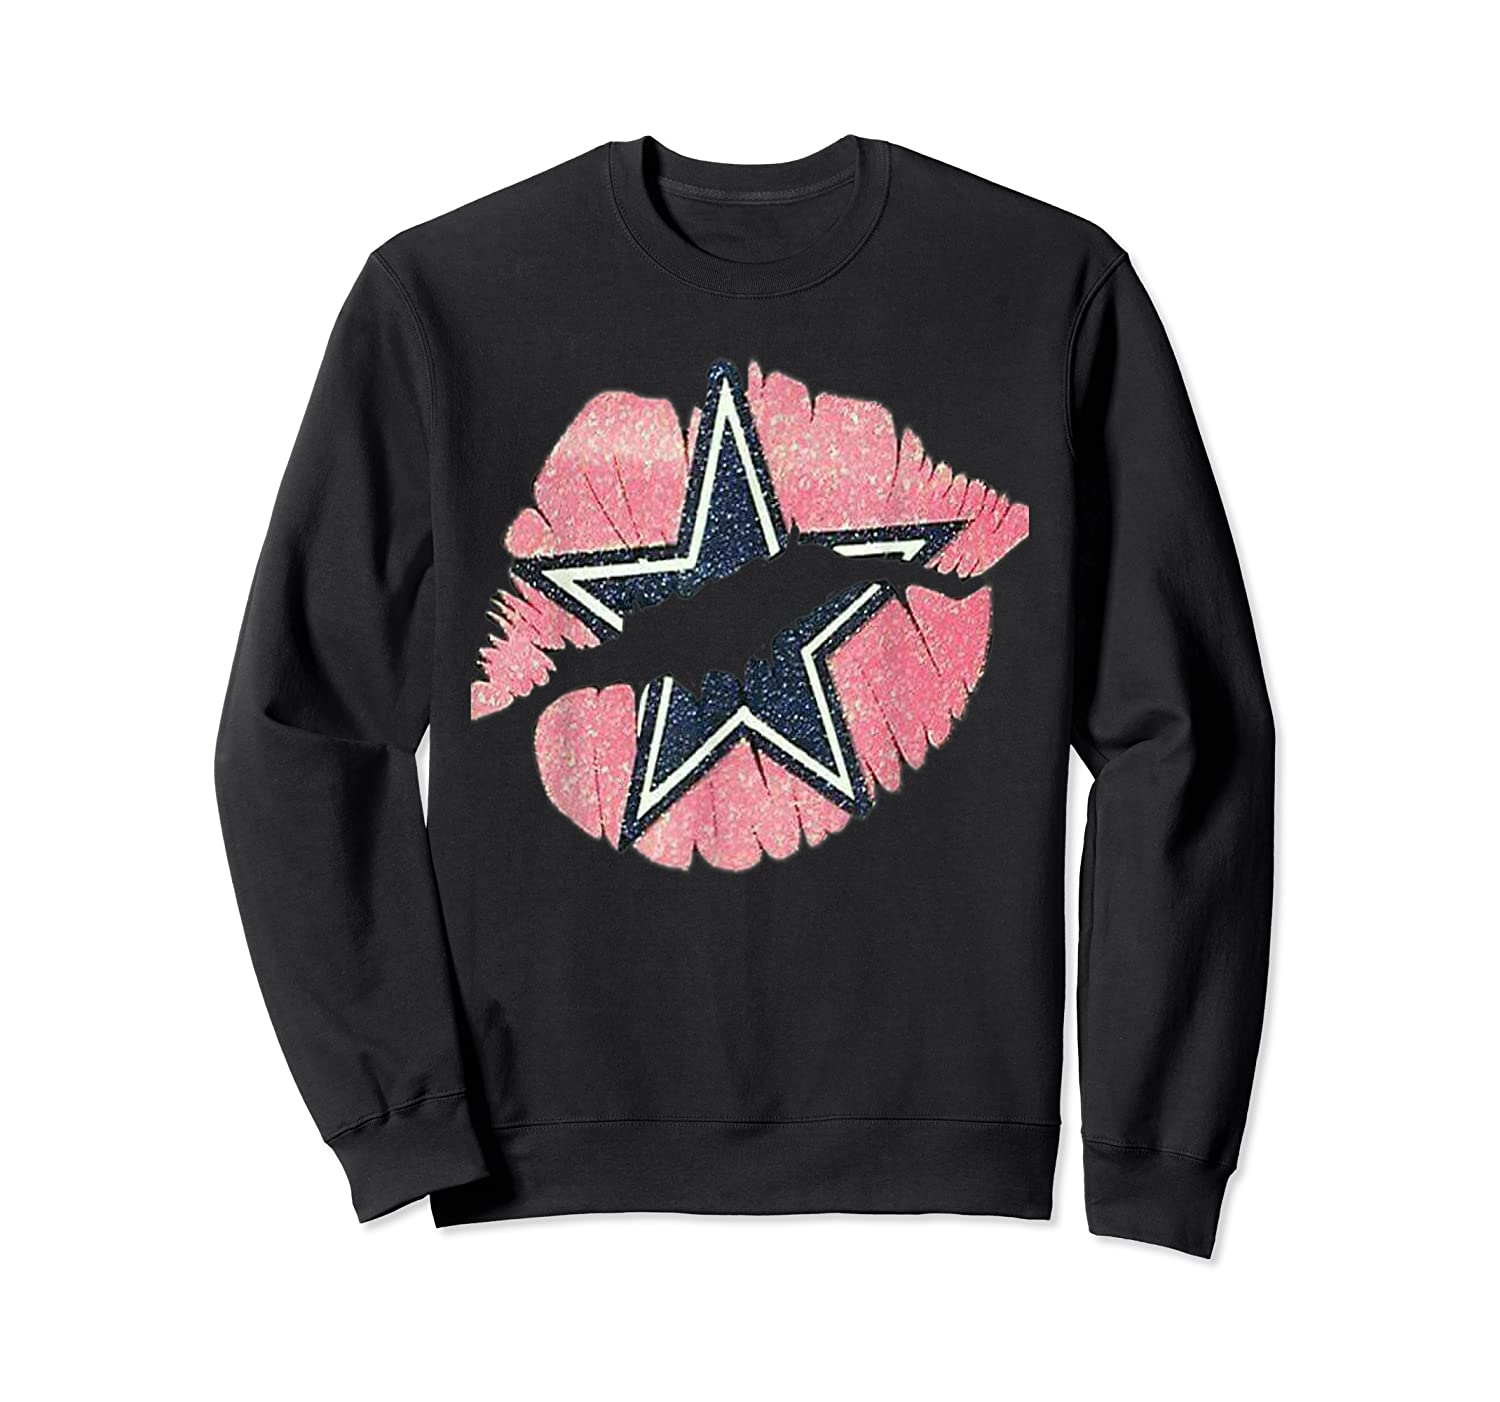 Cow Nation Of Legends Kiss Gift For T Shirt Crewneck Sweater